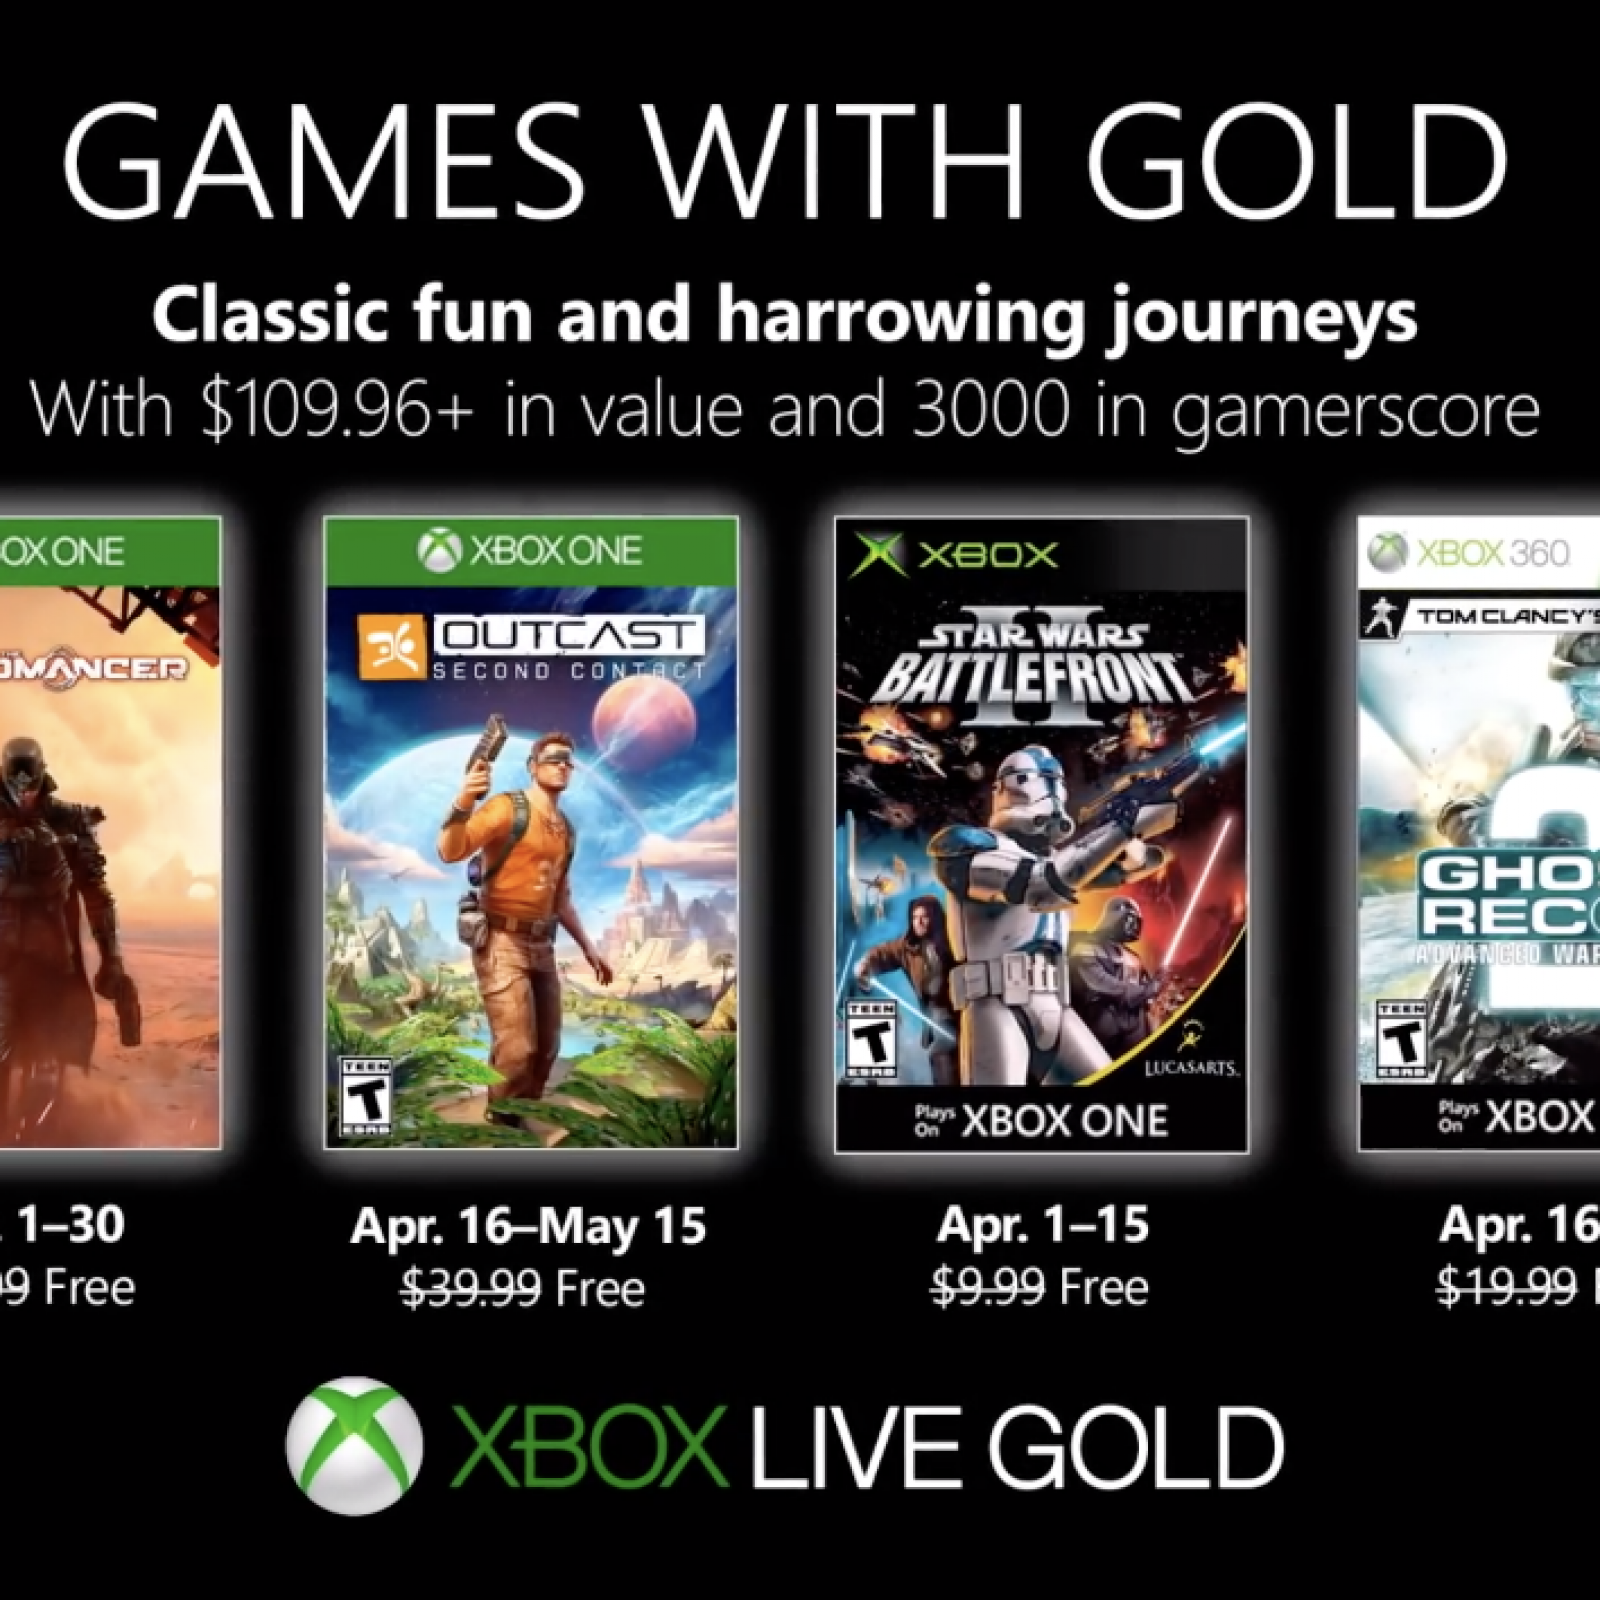 Xbox Games with Gold: April 2019 Free Games Include Technomancer and